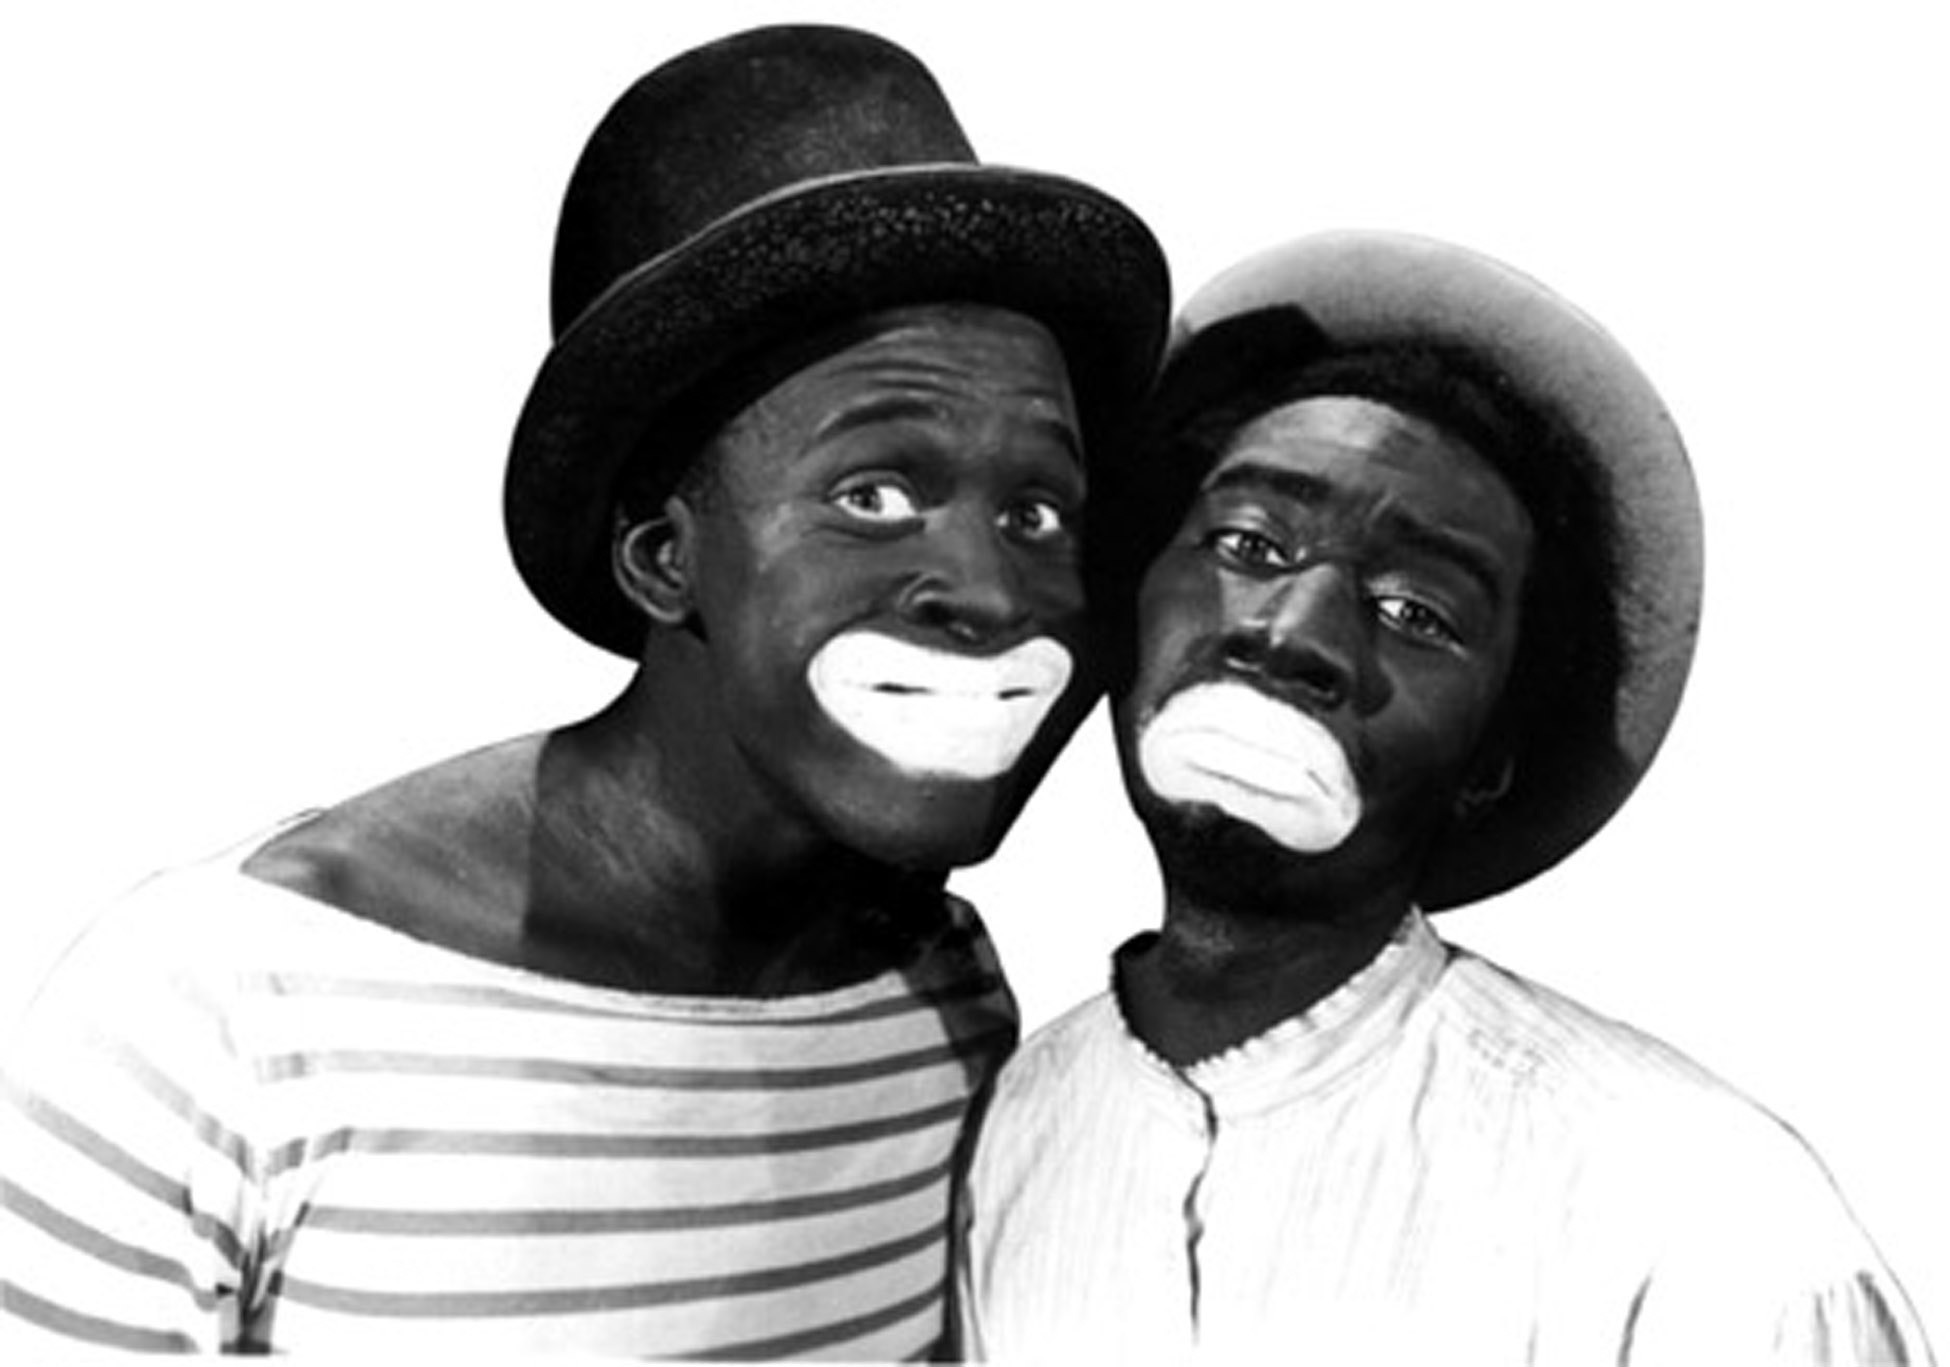 Ethnic Notions. 1986. USA. Directed by Marlon Riggs. Courtesy California Newsreel